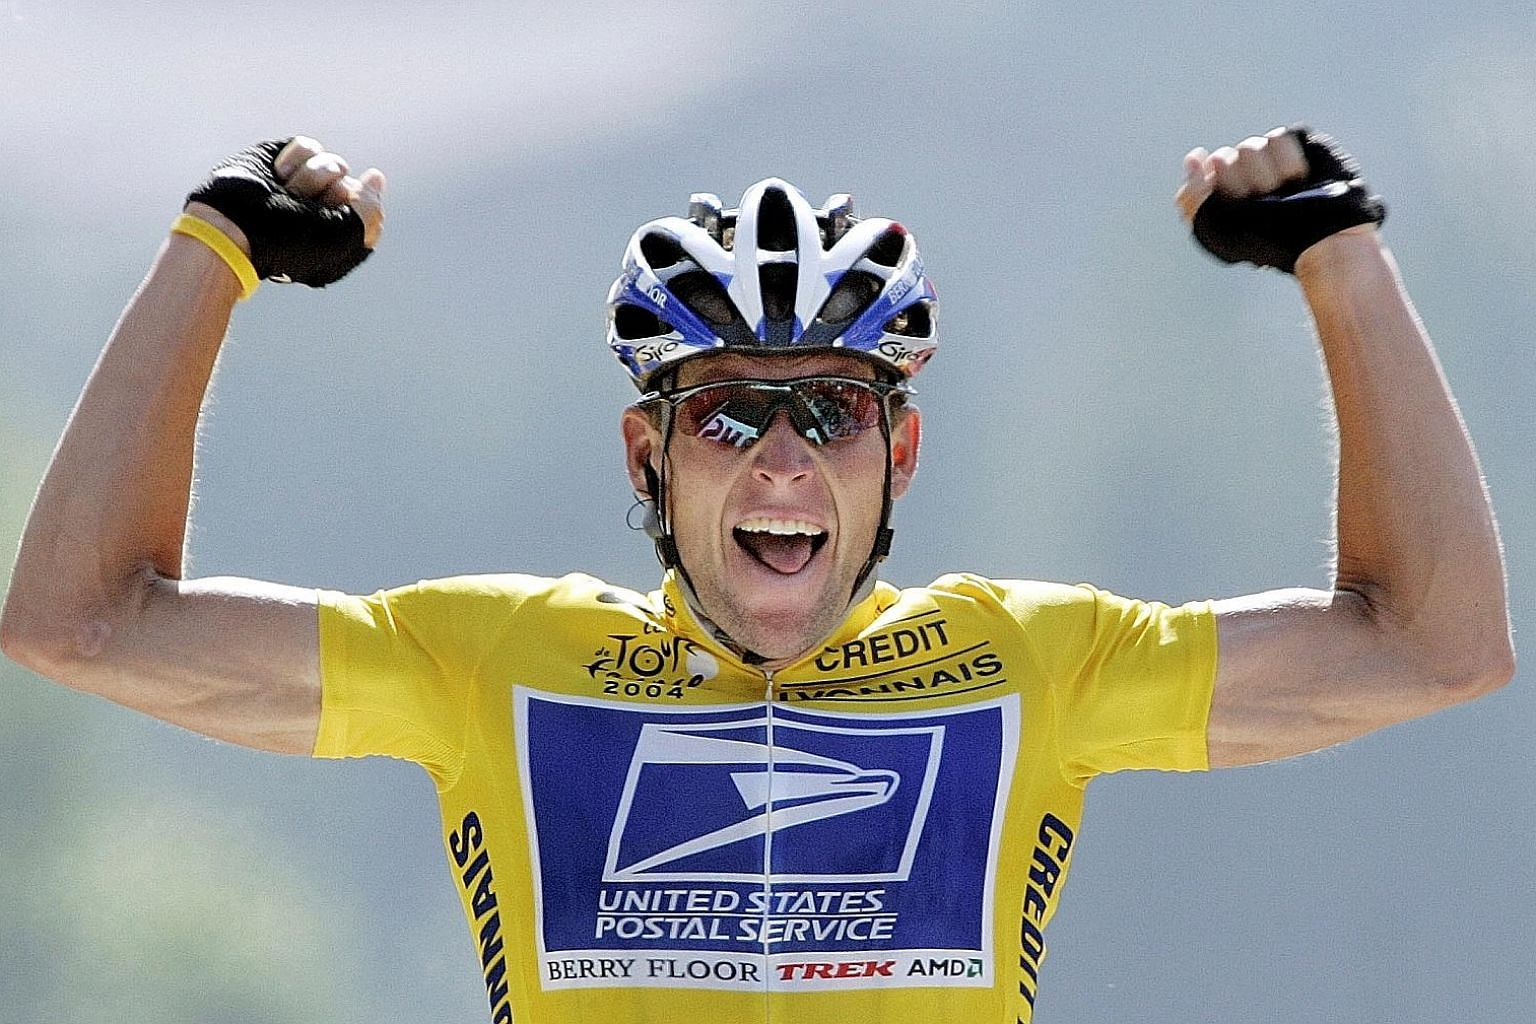 Lance Armstrong celebrating at the finishing line during the 2004 Tour de France. His seven Tour de France wins were voided for doping.